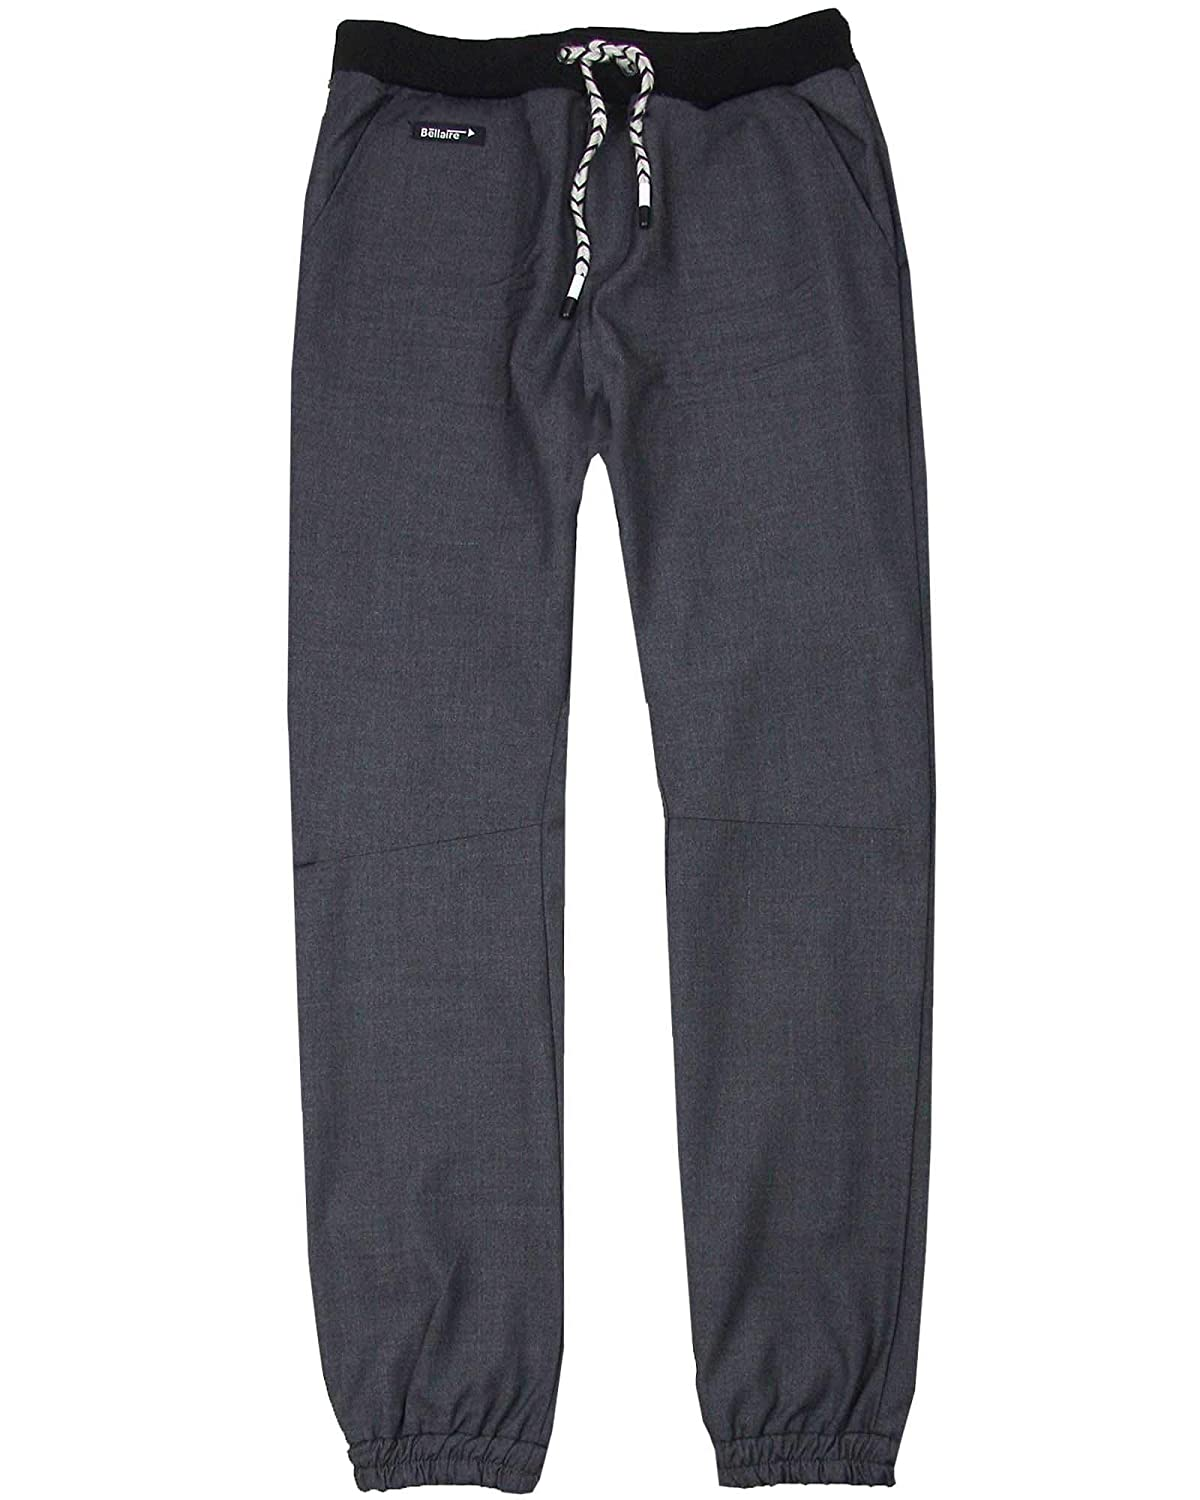 Bellaire Junior Boys Cuffed Chino Pants Sizes 10-16